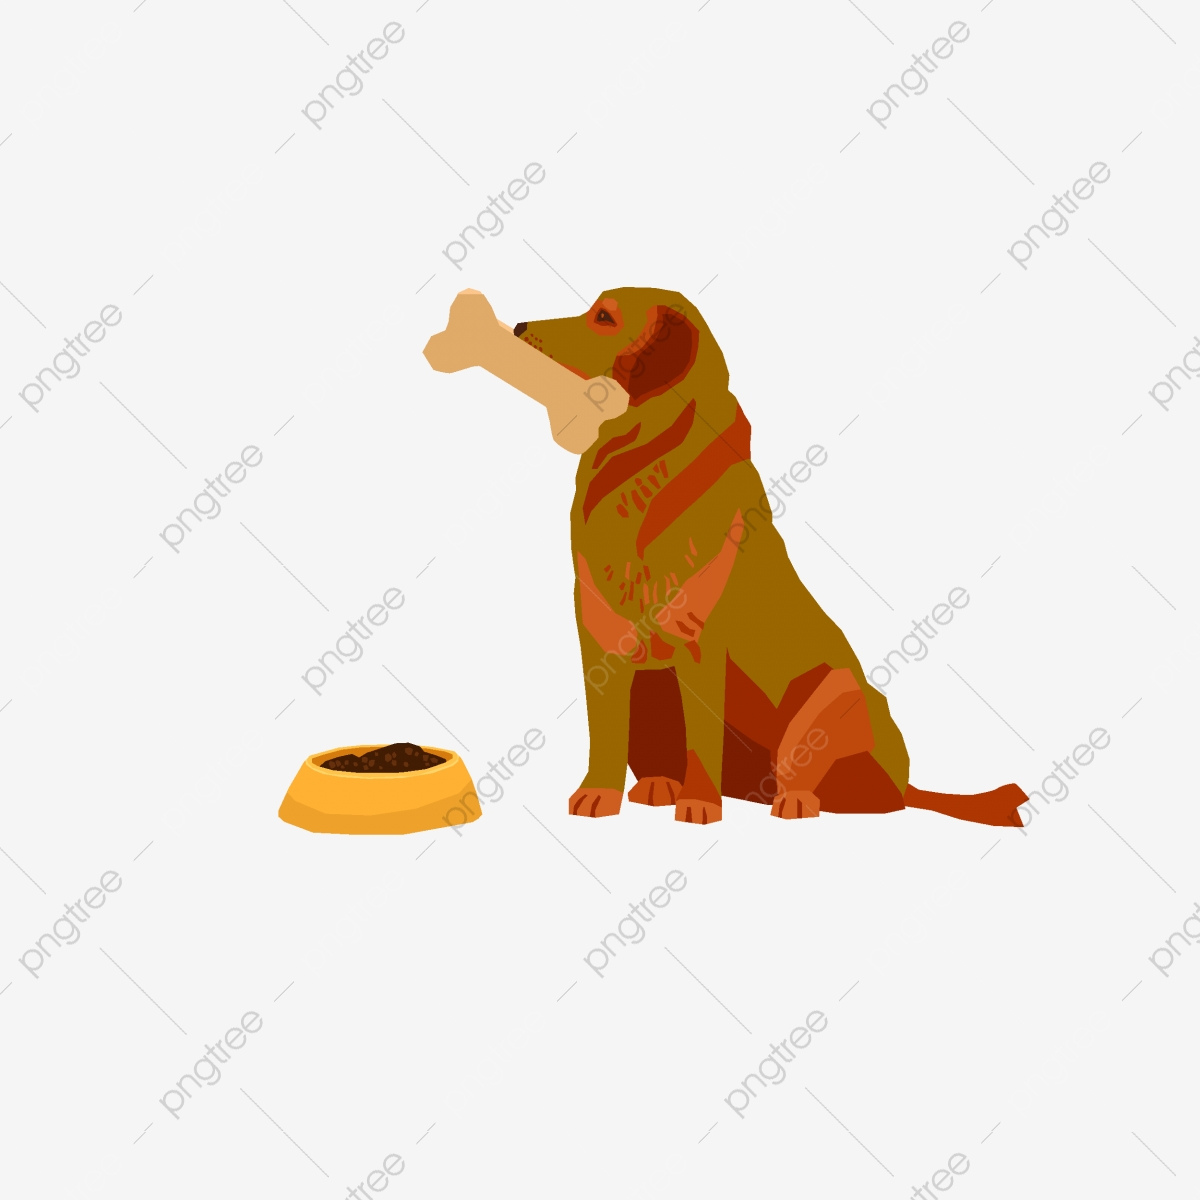 Dog Bone Decorative Elements Background Bones Kennel Bowl Png And Vector With Transparent Background For Free